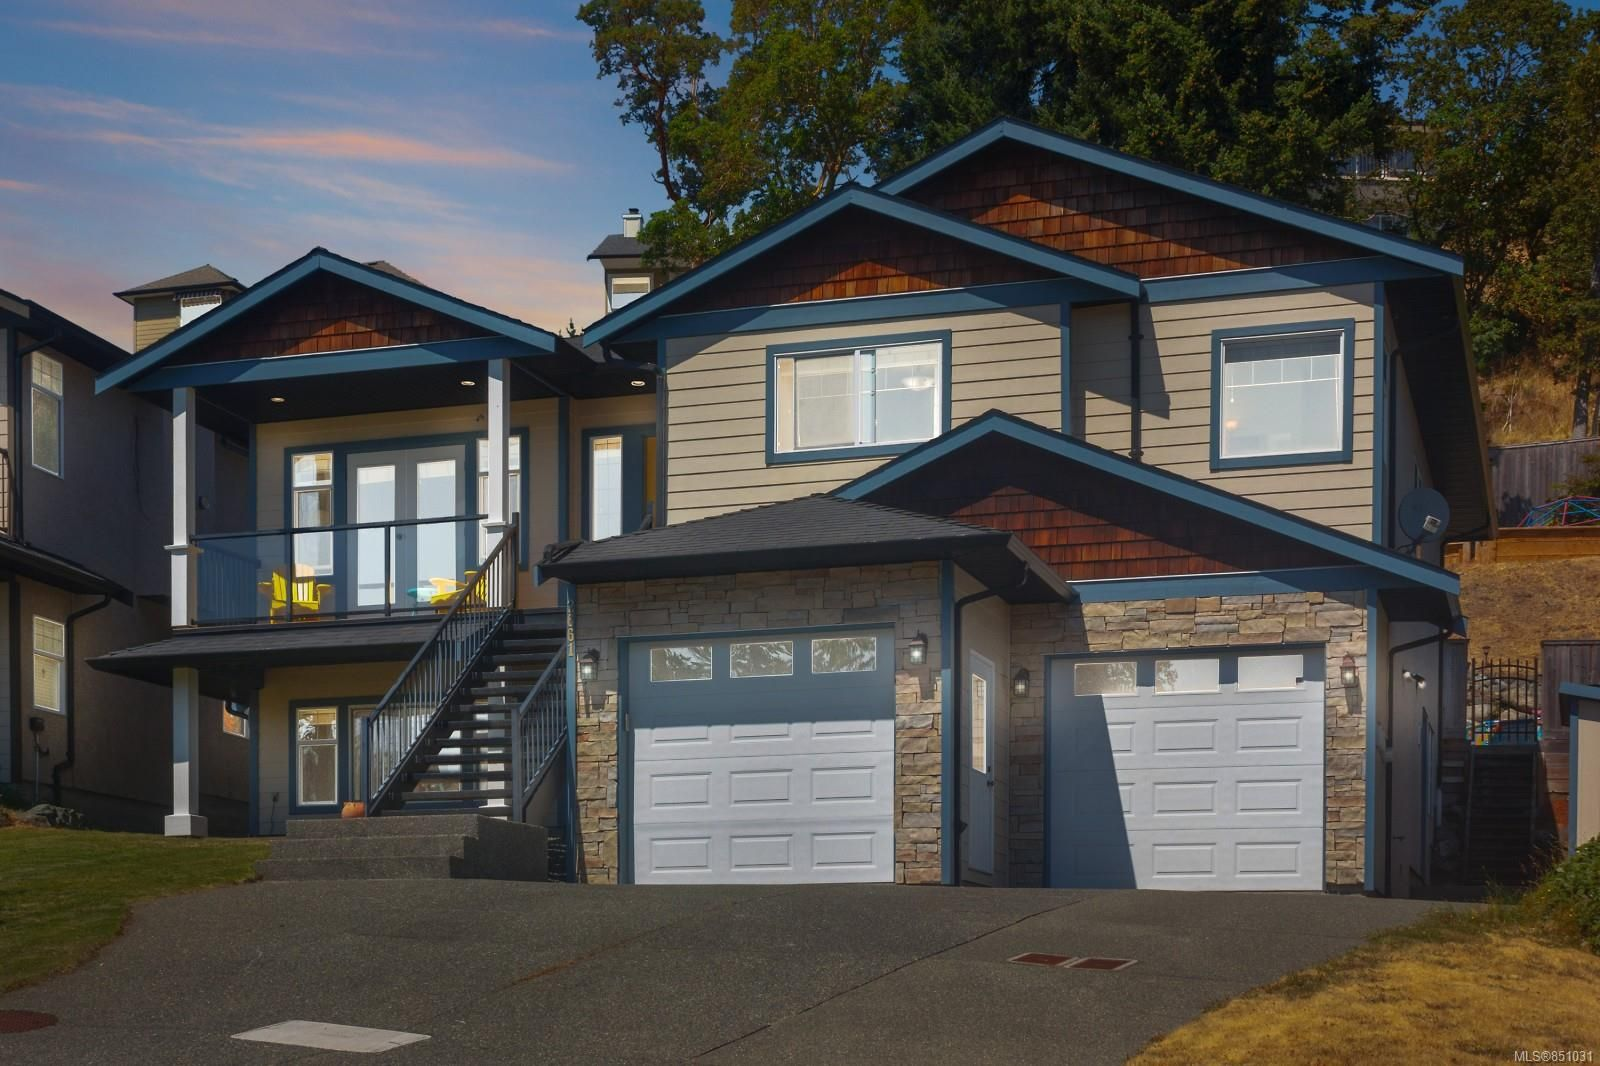 Main Photo: 2661 Crystalview Dr in : La Atkins House for sale (Langford)  : MLS®# 851031